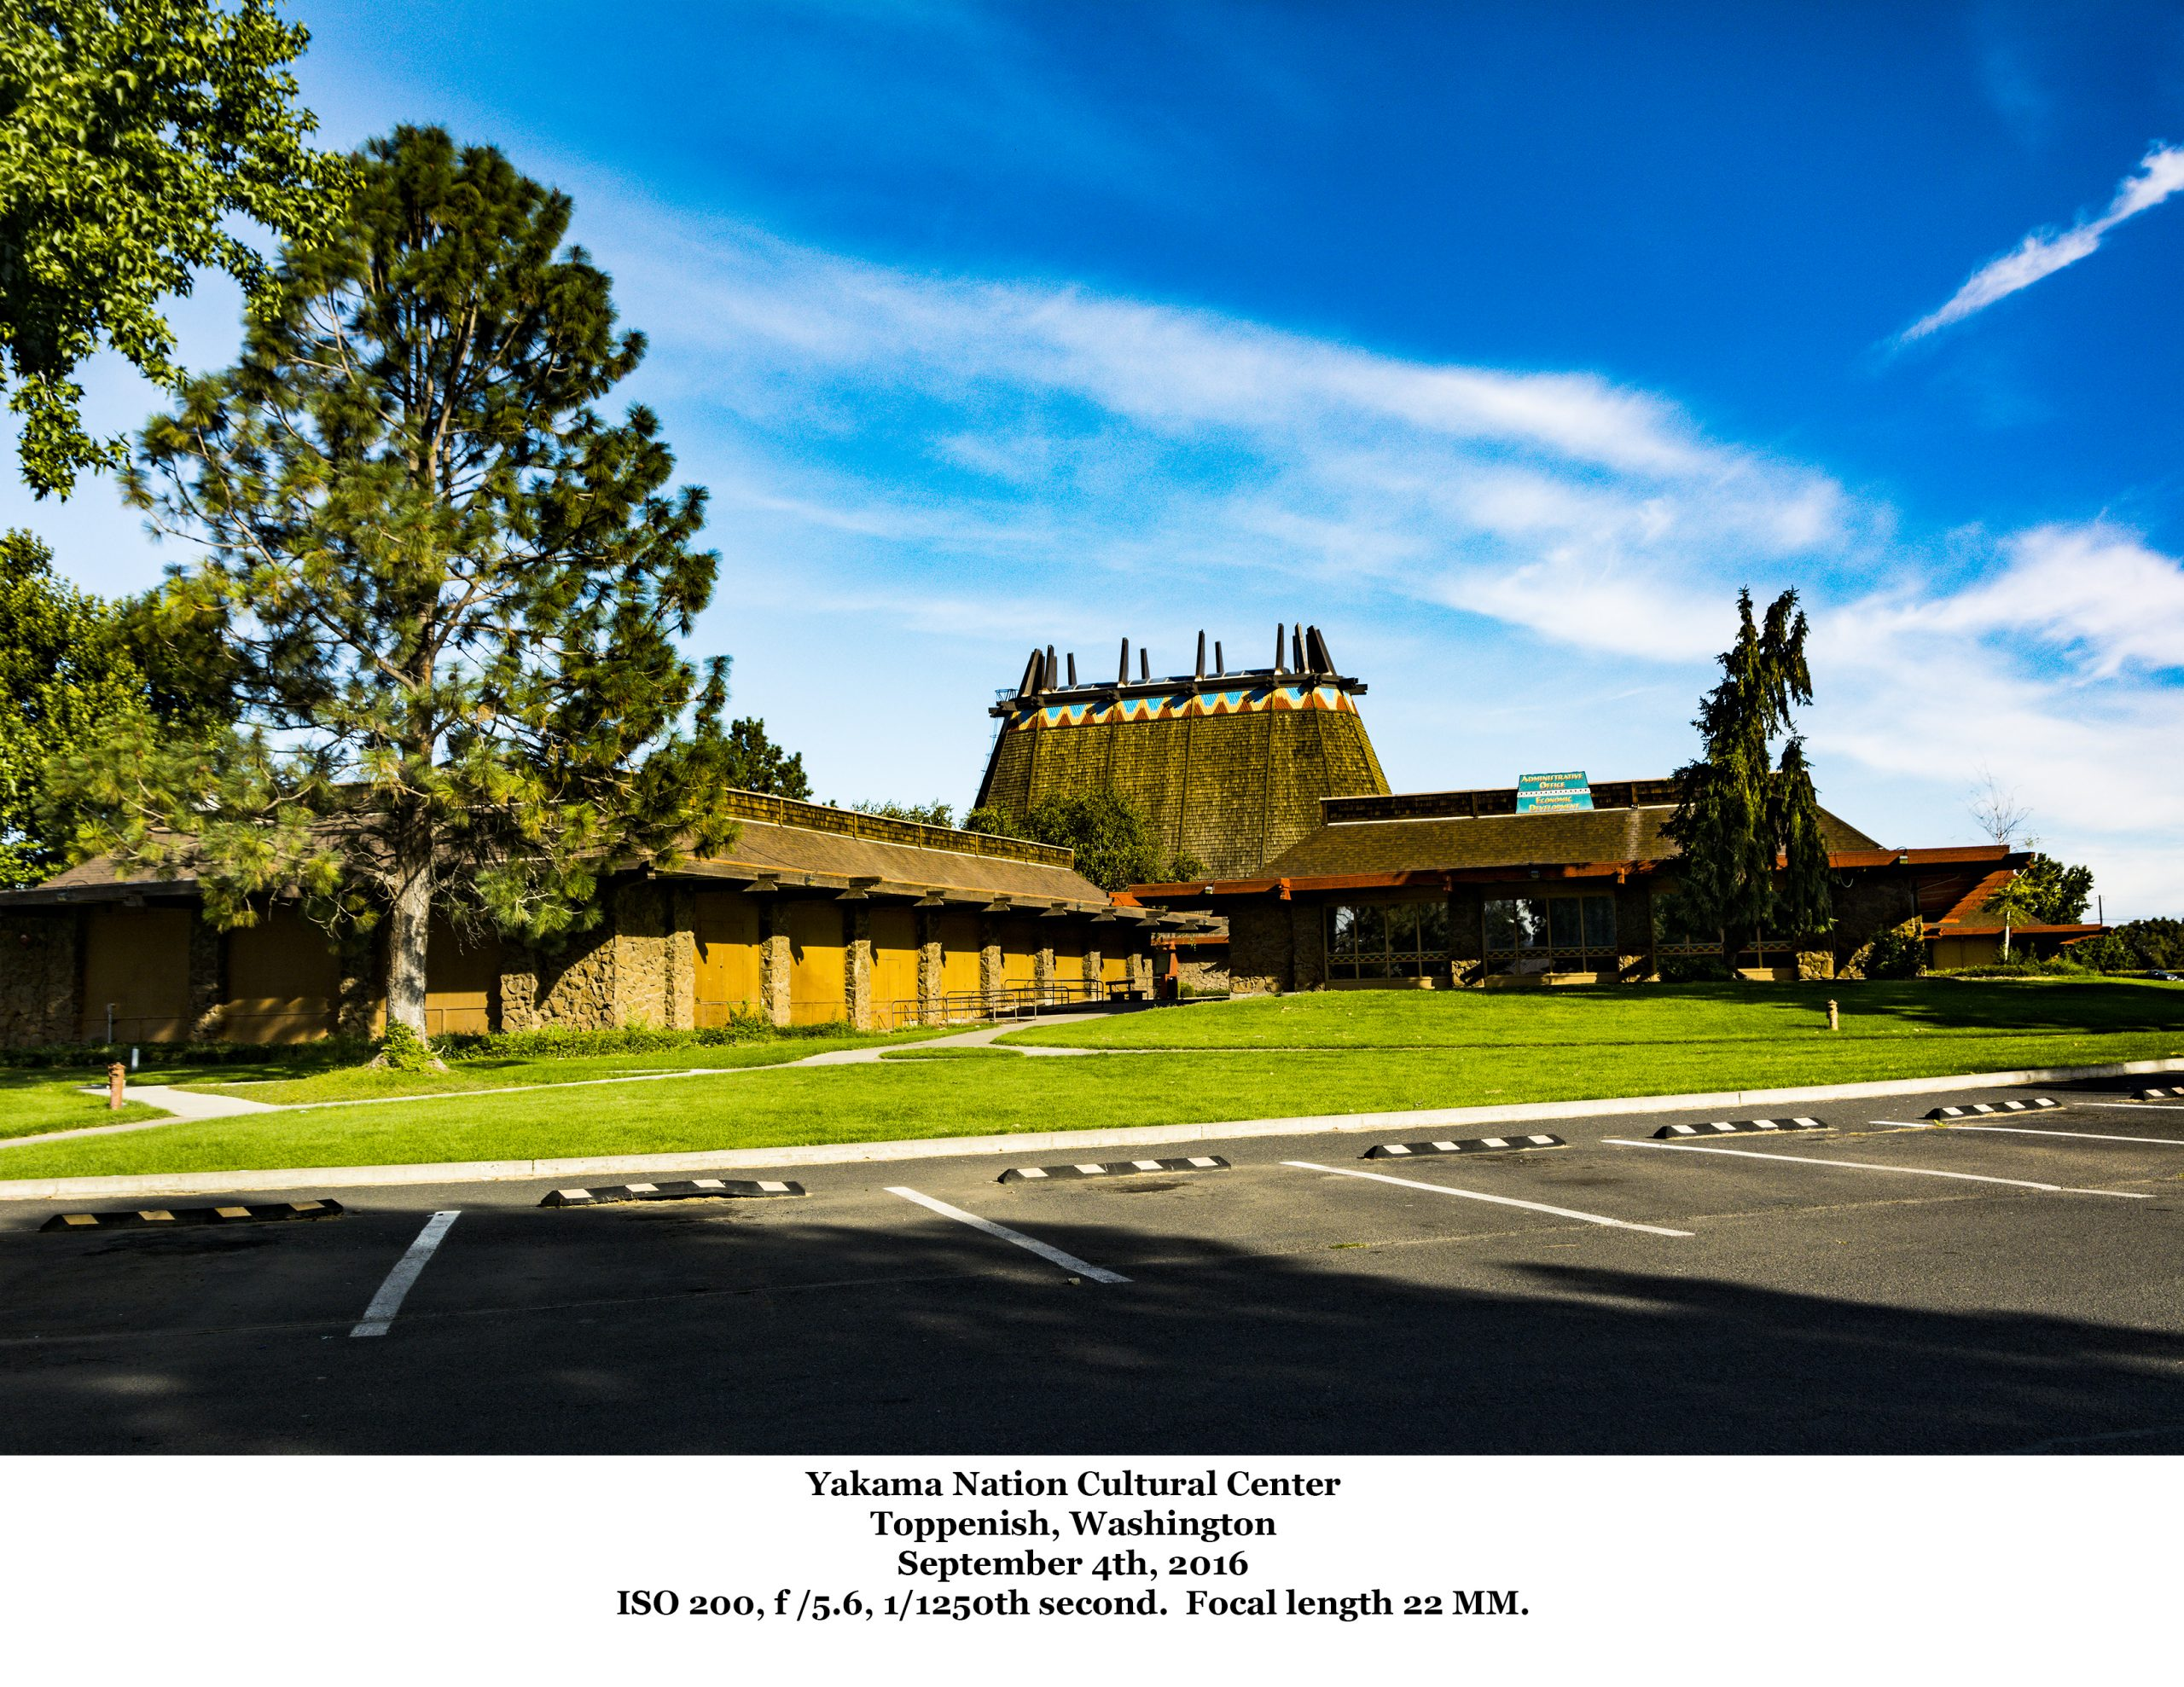 The Yakama Nation Cultural Center